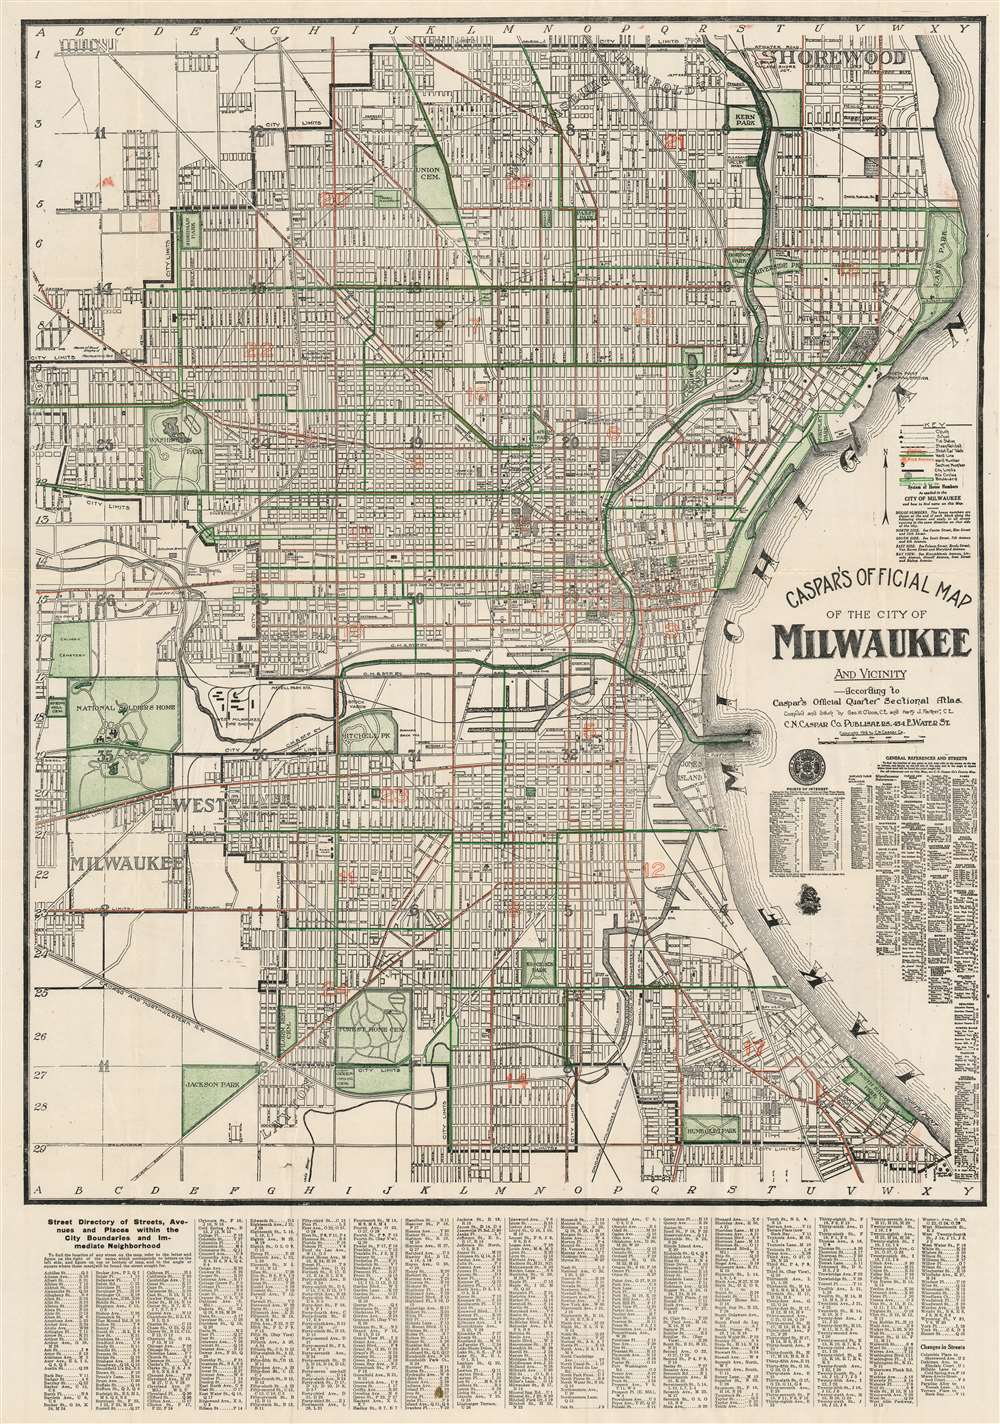 Caspar's Official Map of the City of Milwaukee and Vicinity. - Main View